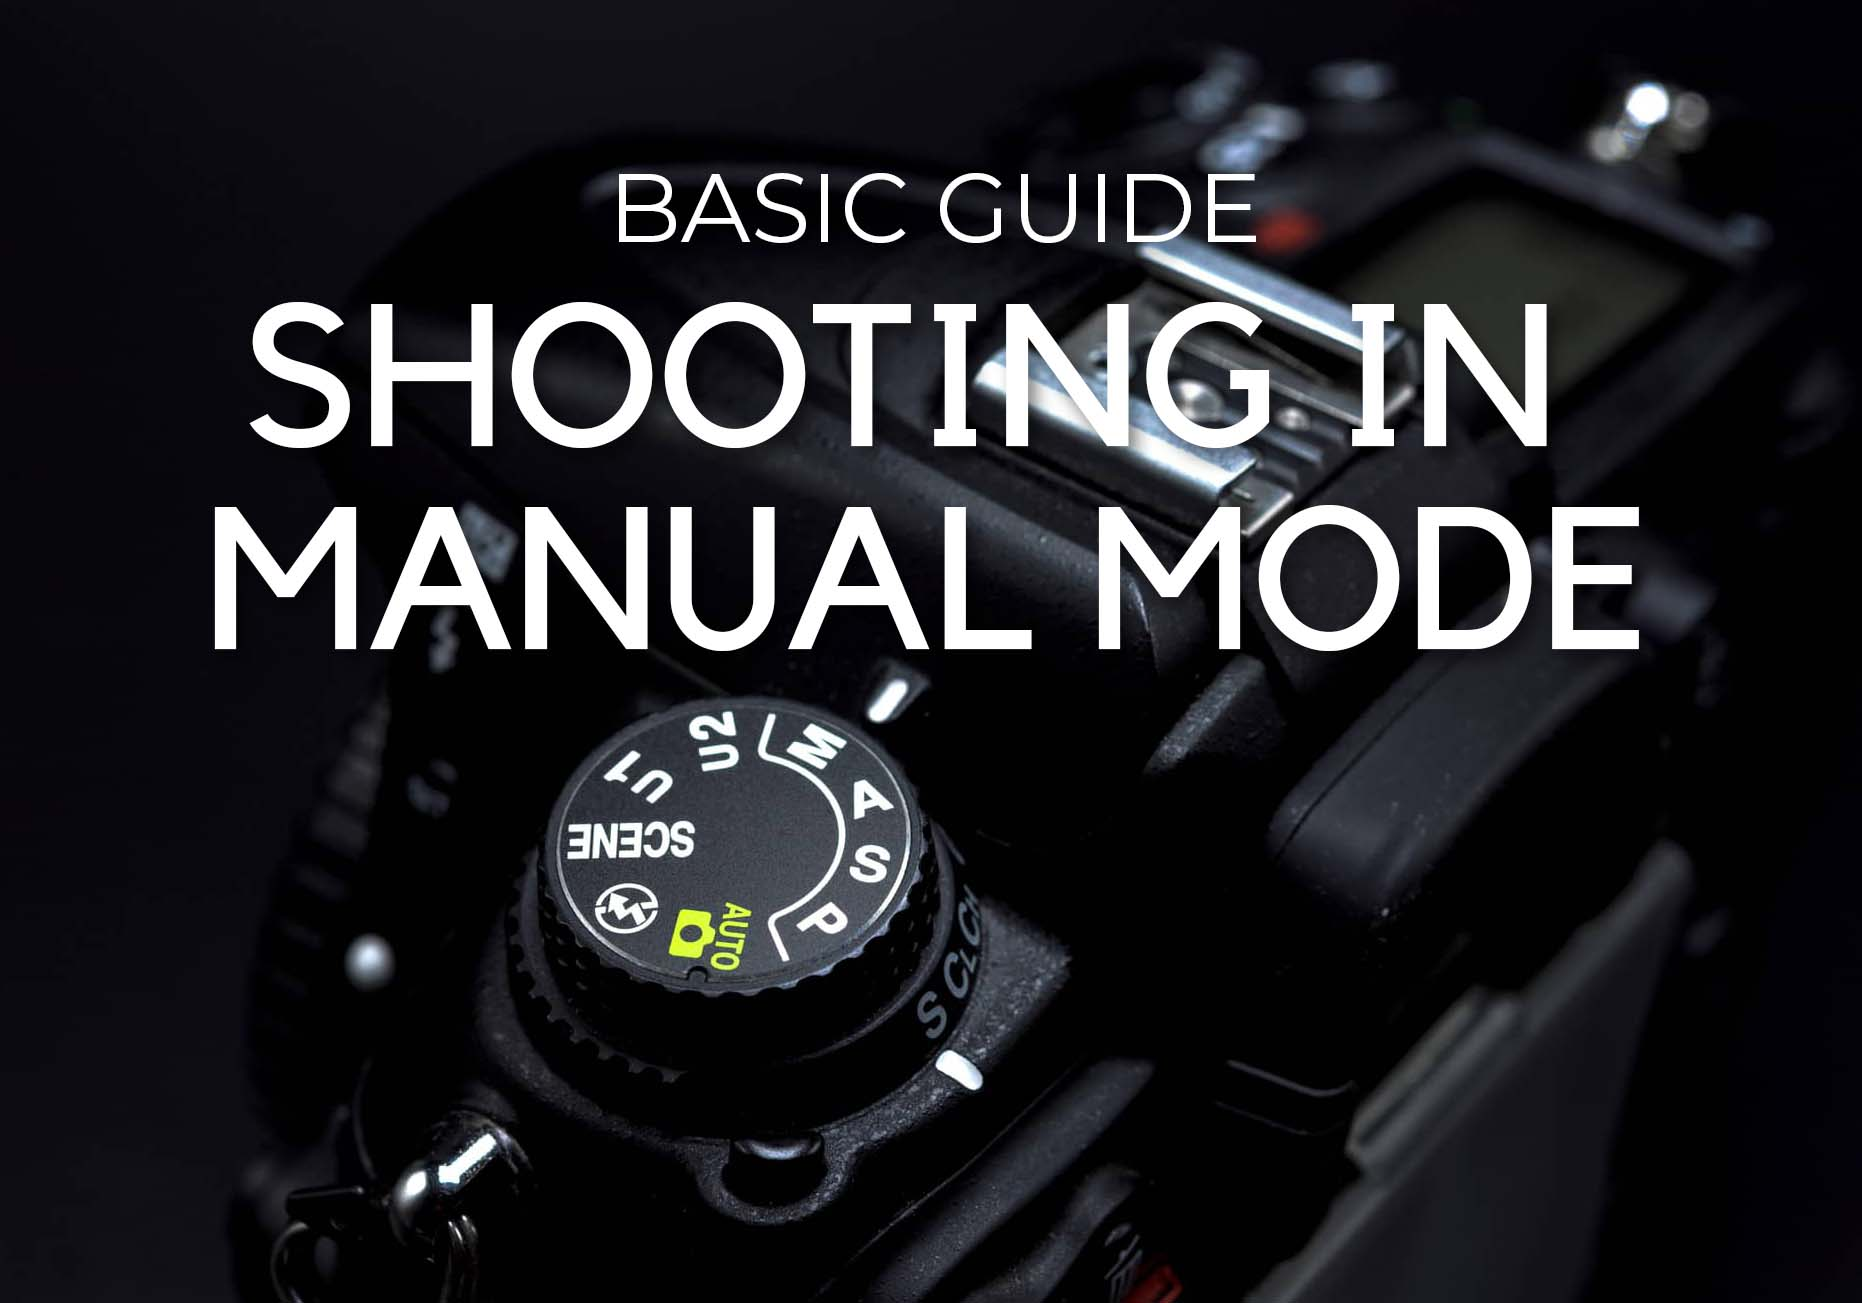 SHOOTING IN MANUAL MODE – Basic guide